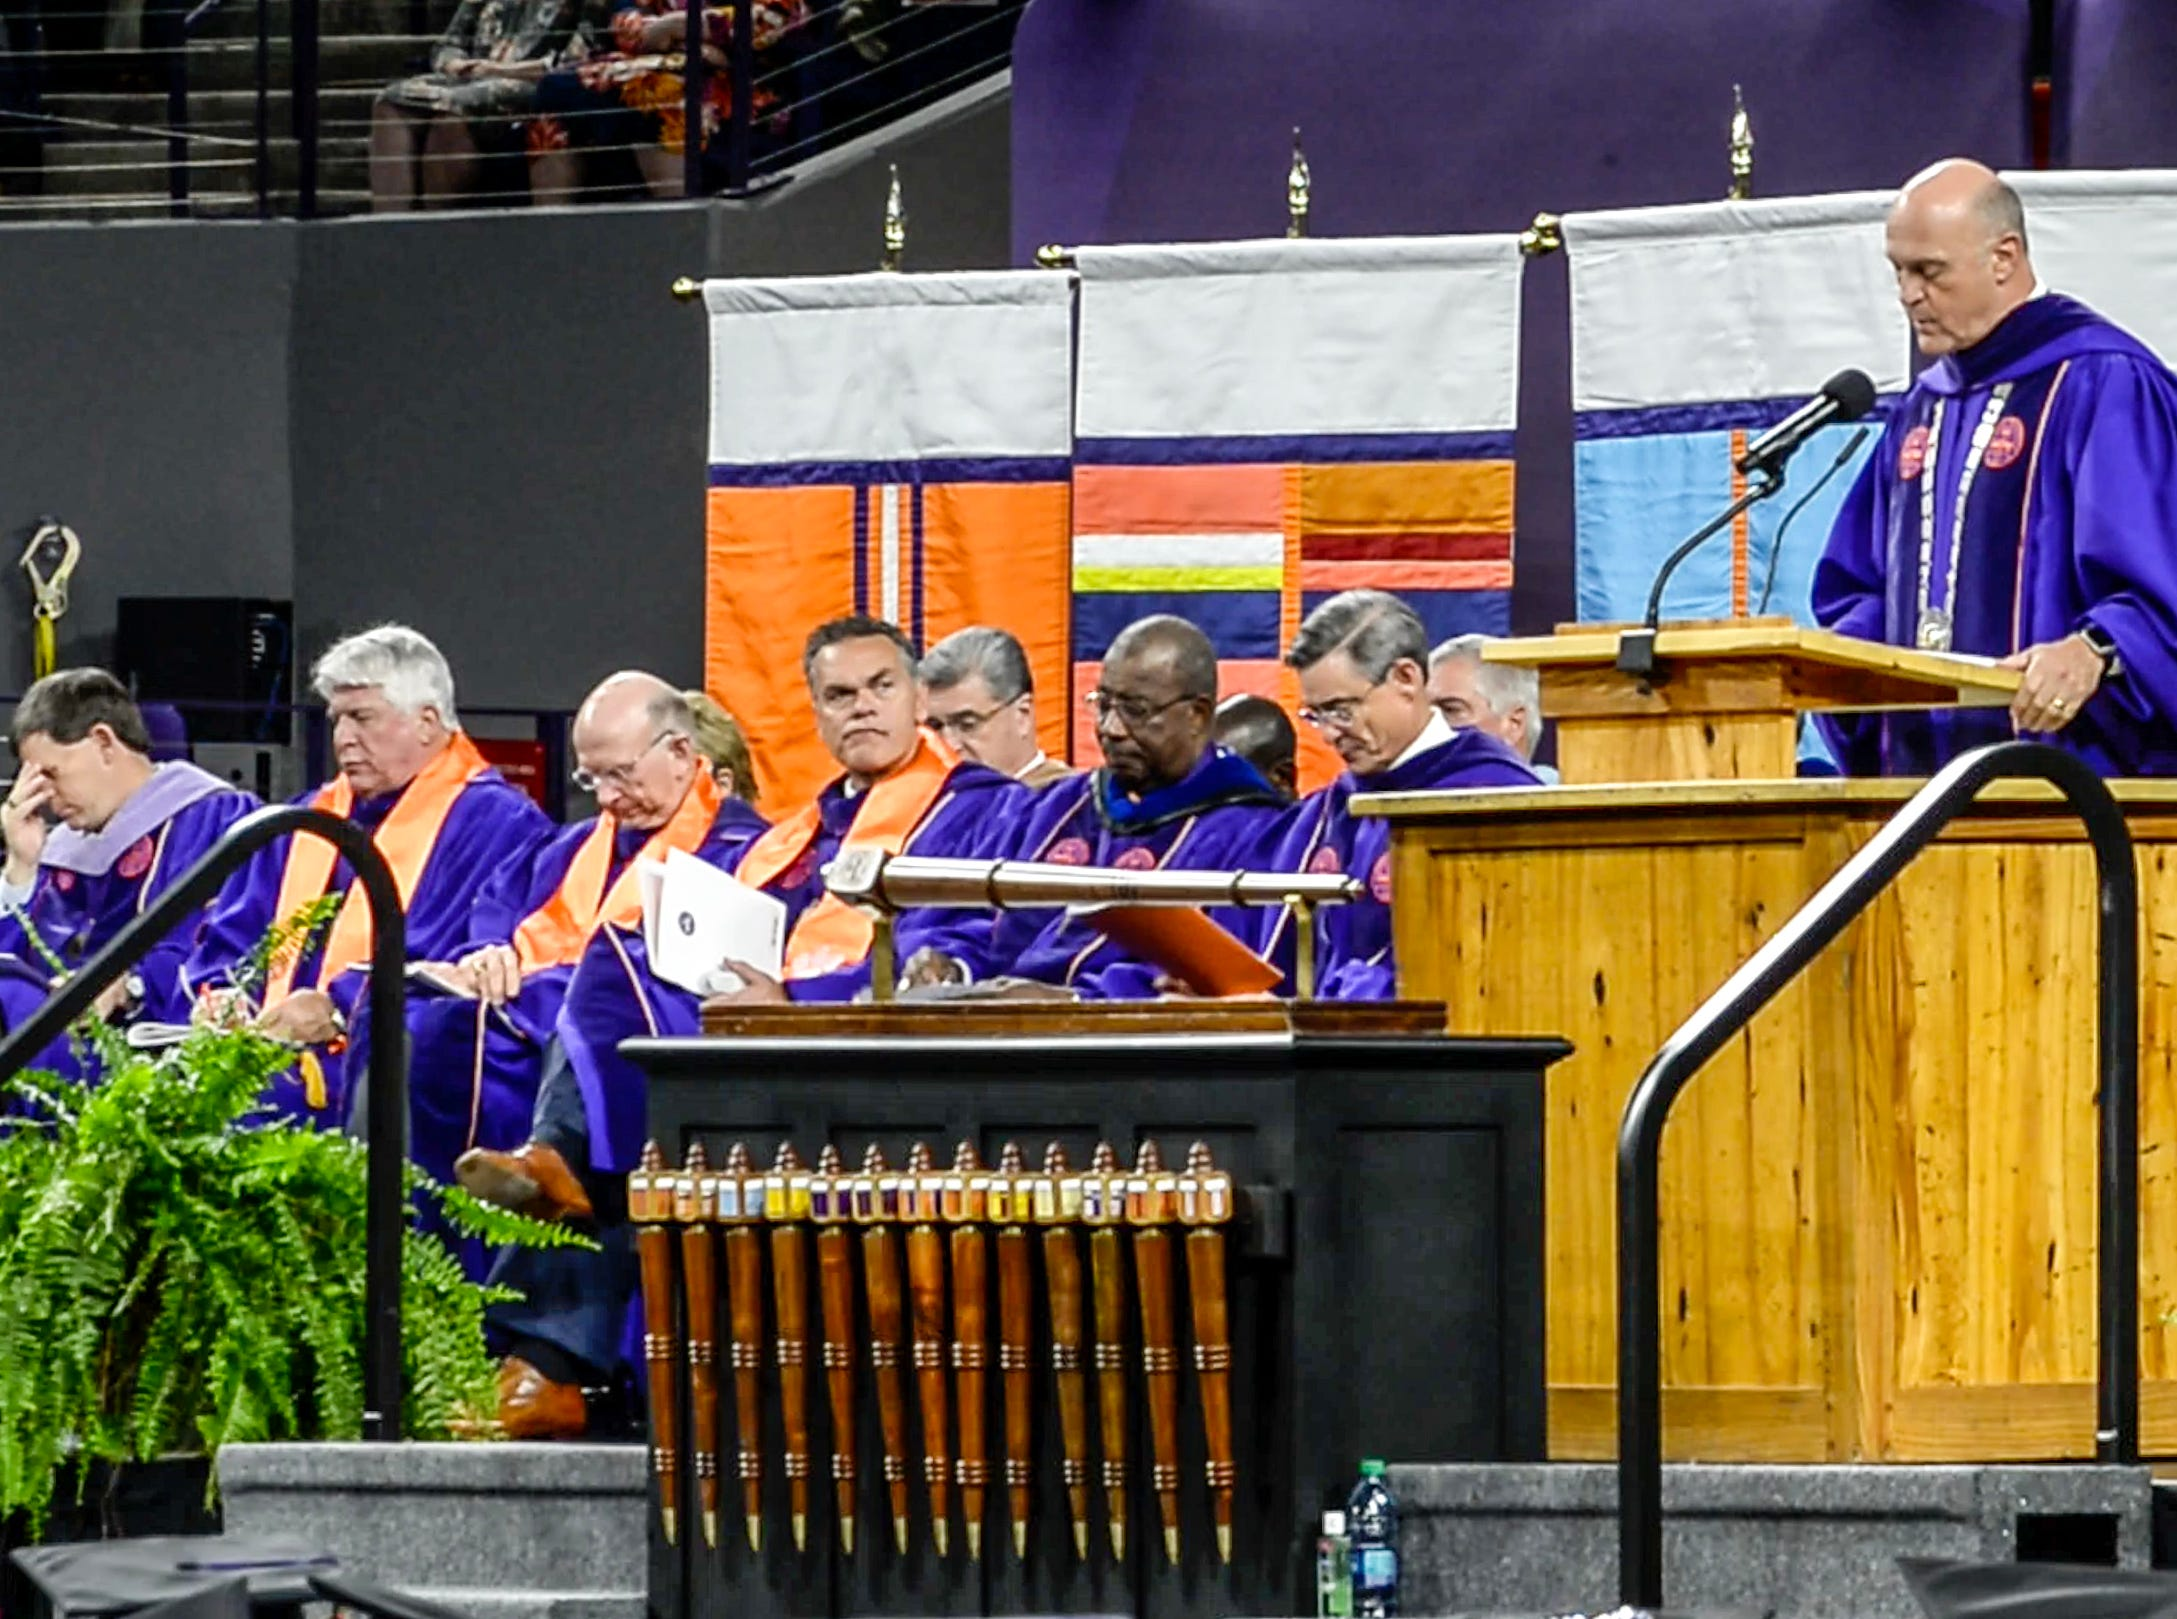 """Clemson President Jim Clements awards a degree in Enviromental and Natural Resources posthumously to William """"Billy"""" L. Gallien of Clover, S.C., during Clemson University commencement ceremonies in Littlejohn Coliseum in Clemson Friday, May 10, 2019. Gallien died after driving a 2006 Ford pickup truck May 1 into the rear of a dump truck that was stopped in one of the I-85 northbound lanes in Spartanburg County."""